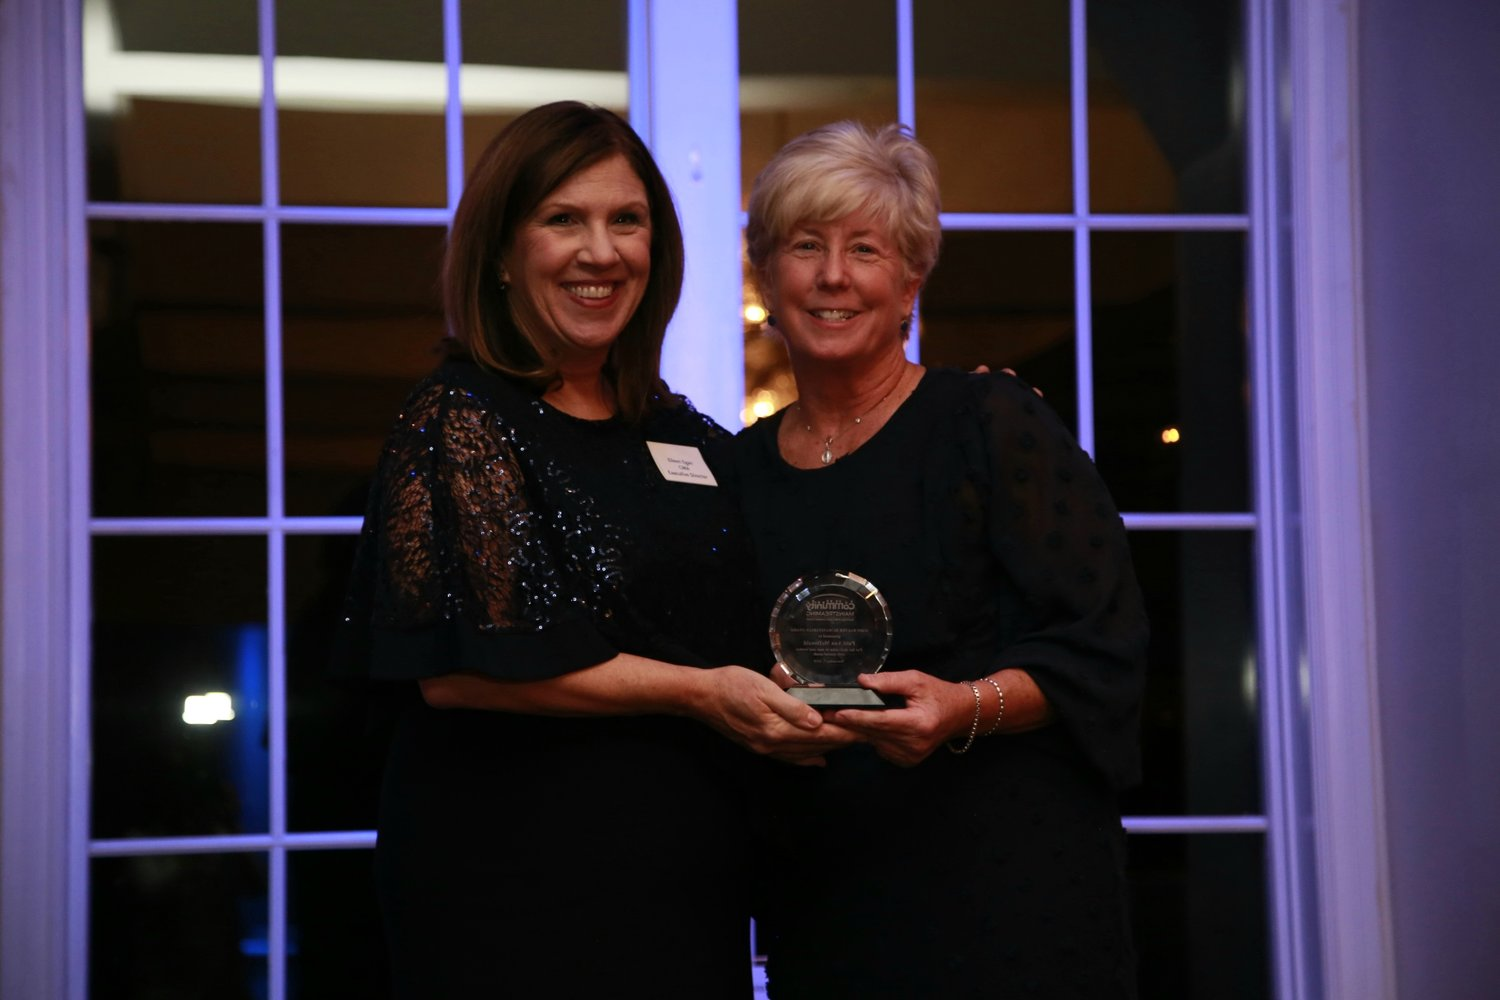 McDonald, right, was presented with the Community Mainstreaming Associates' John Walter Humanitarian Award on Nov. 7 by Executive Director Eileen Egan.